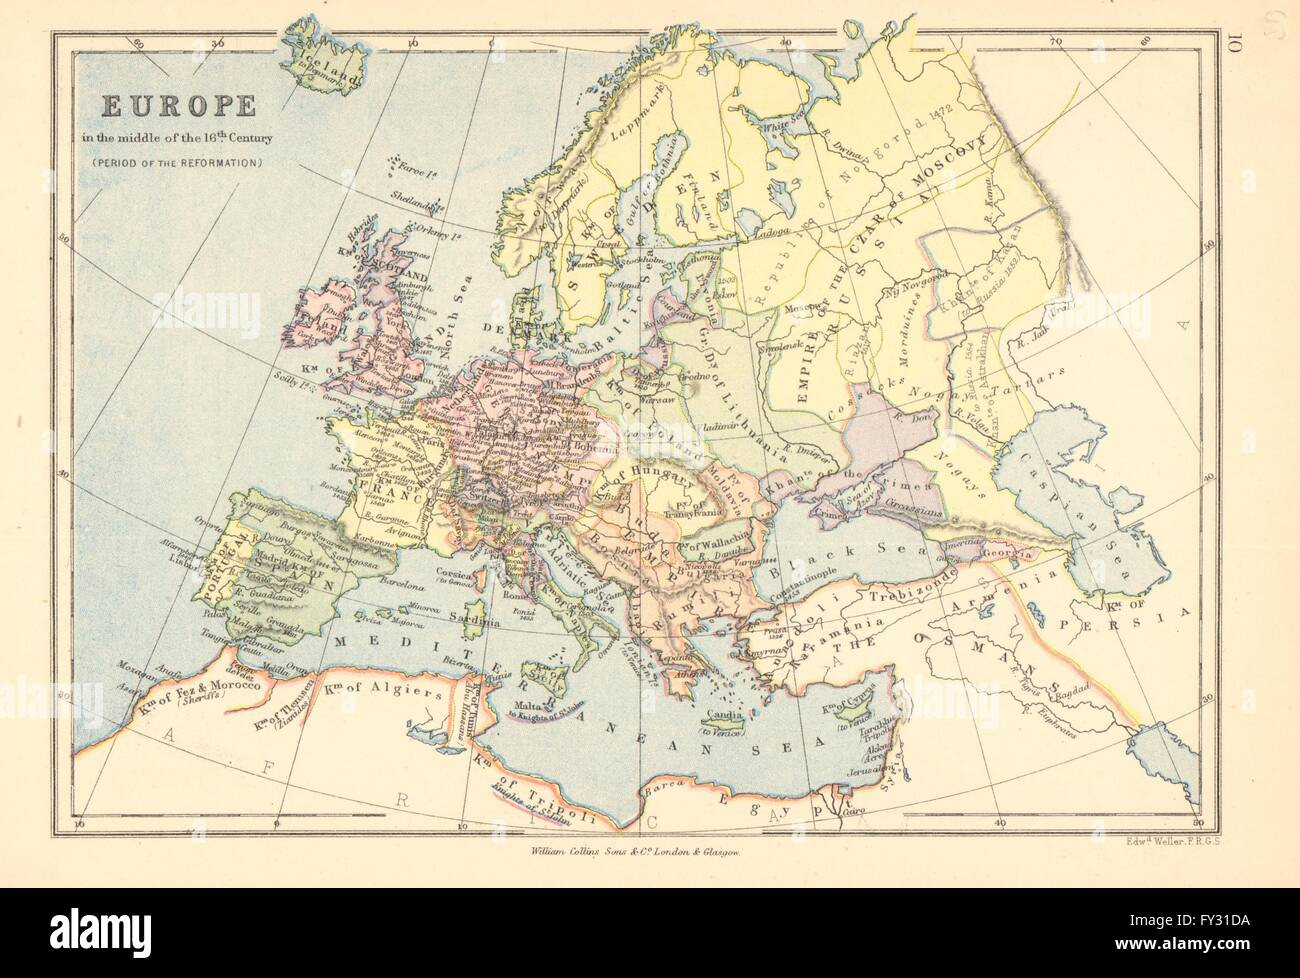 social conditions in 16th century europe 19th century europe europe tried to return to the political/social divisions of the pre-napoleonic europe napoleon's legacy freemanpedia ap world history.